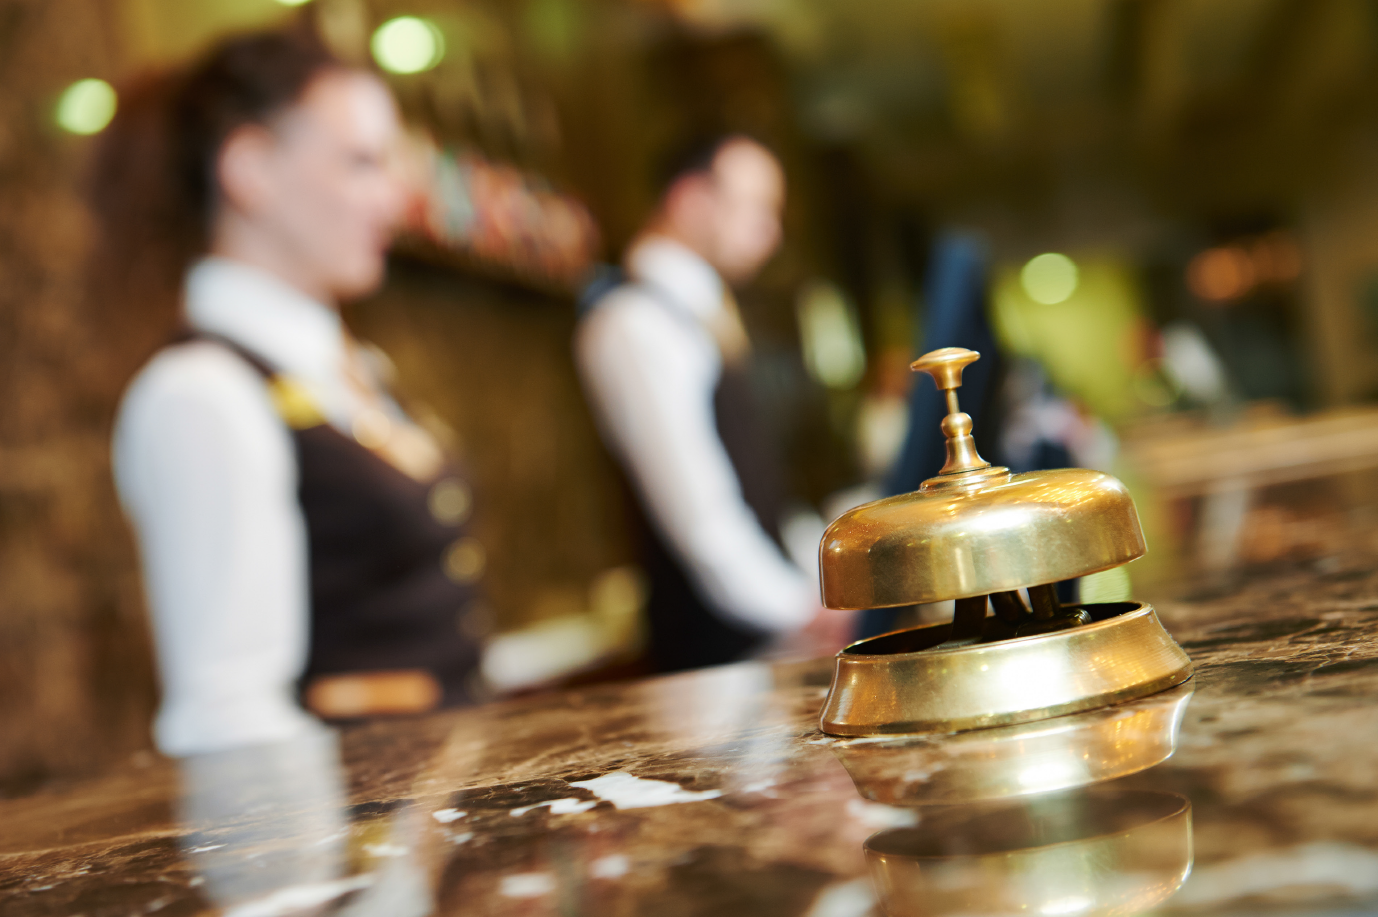 The Digital Future of the Hotel Industry Starts at Home